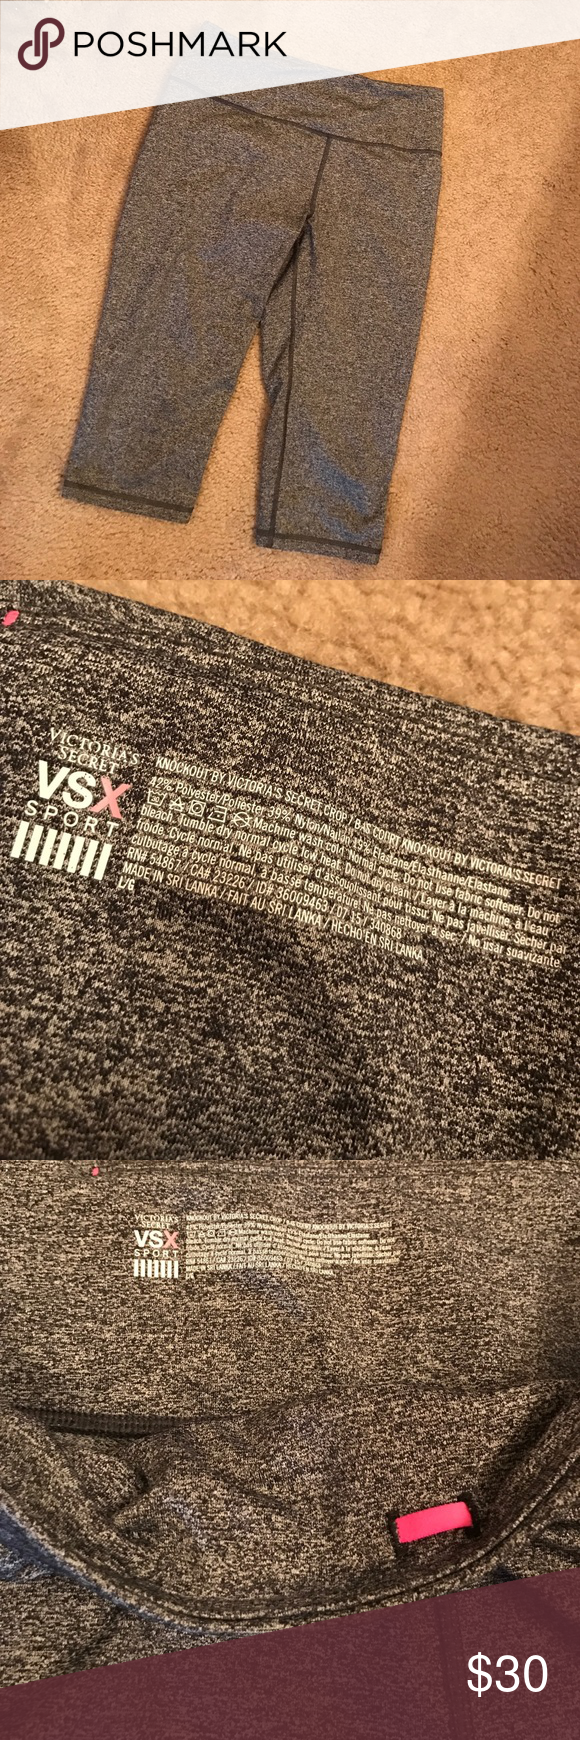 🎉 ON SALE 🎉 VS Knockout Crop - Like New Like knew, only worn a handful of times & are in perfect condition. No pilling or any damage. Drawstring in waistband. Reflective VSX label on back of leg. Willing to consider reasonable offers. Victoria's Secret Pants Leggings